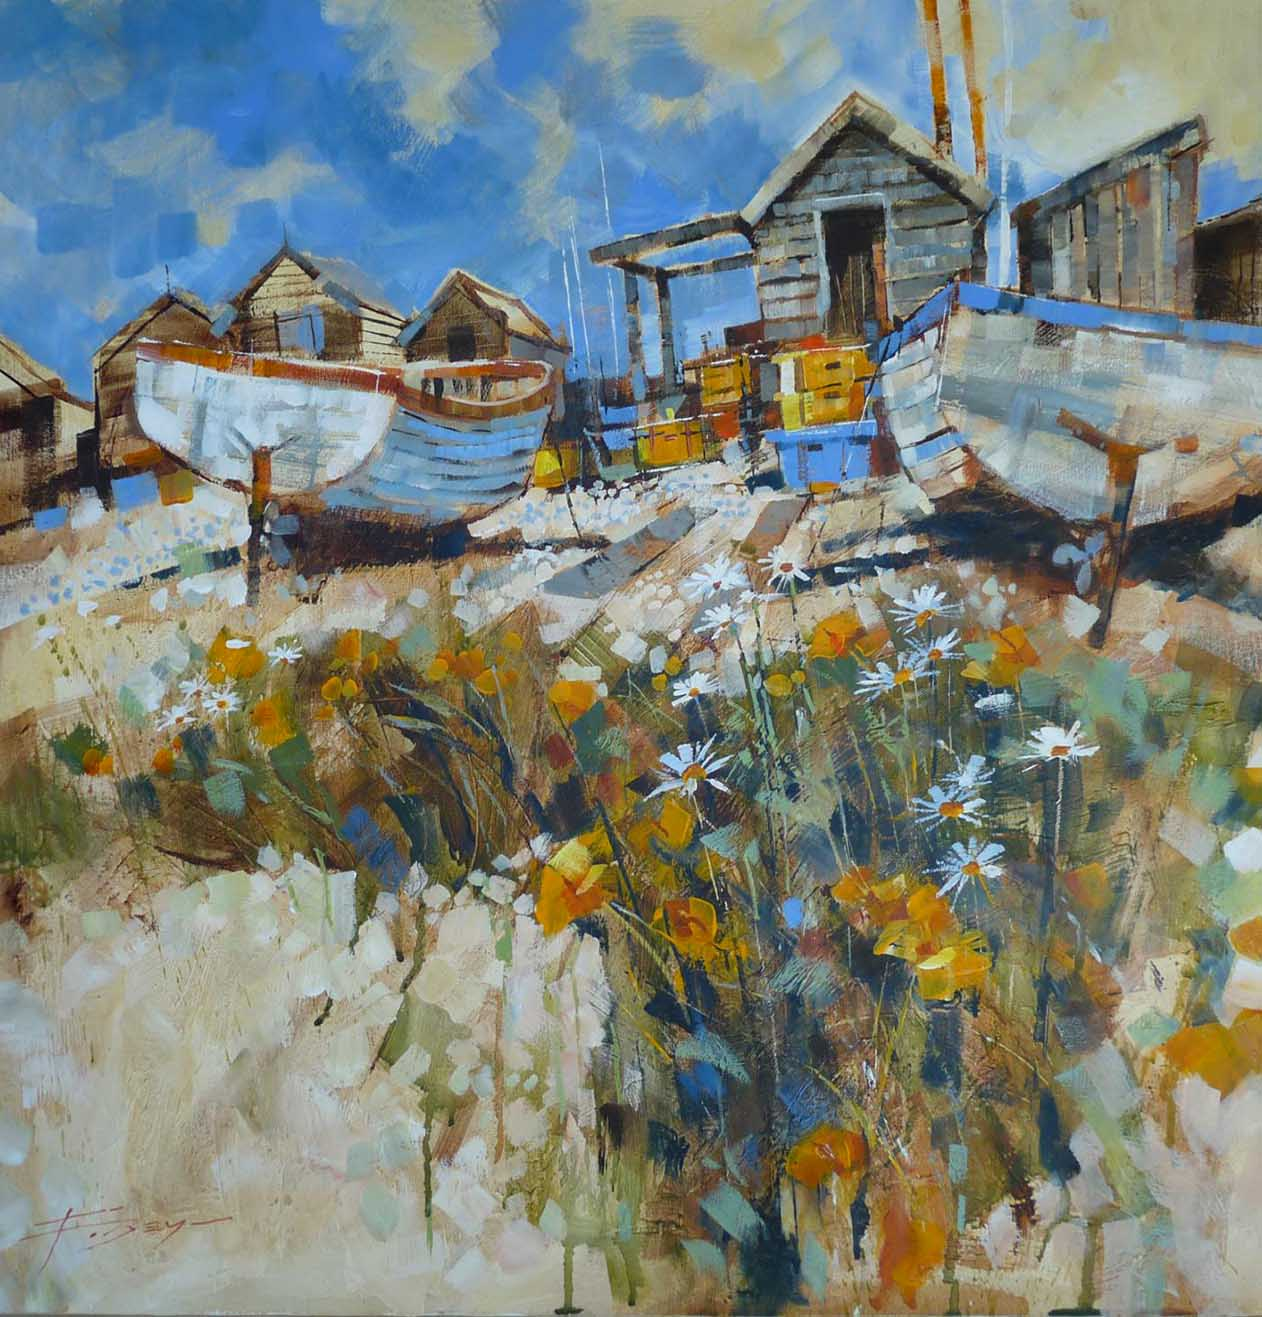 Daisies amongst the pebbles by Chris Forsey